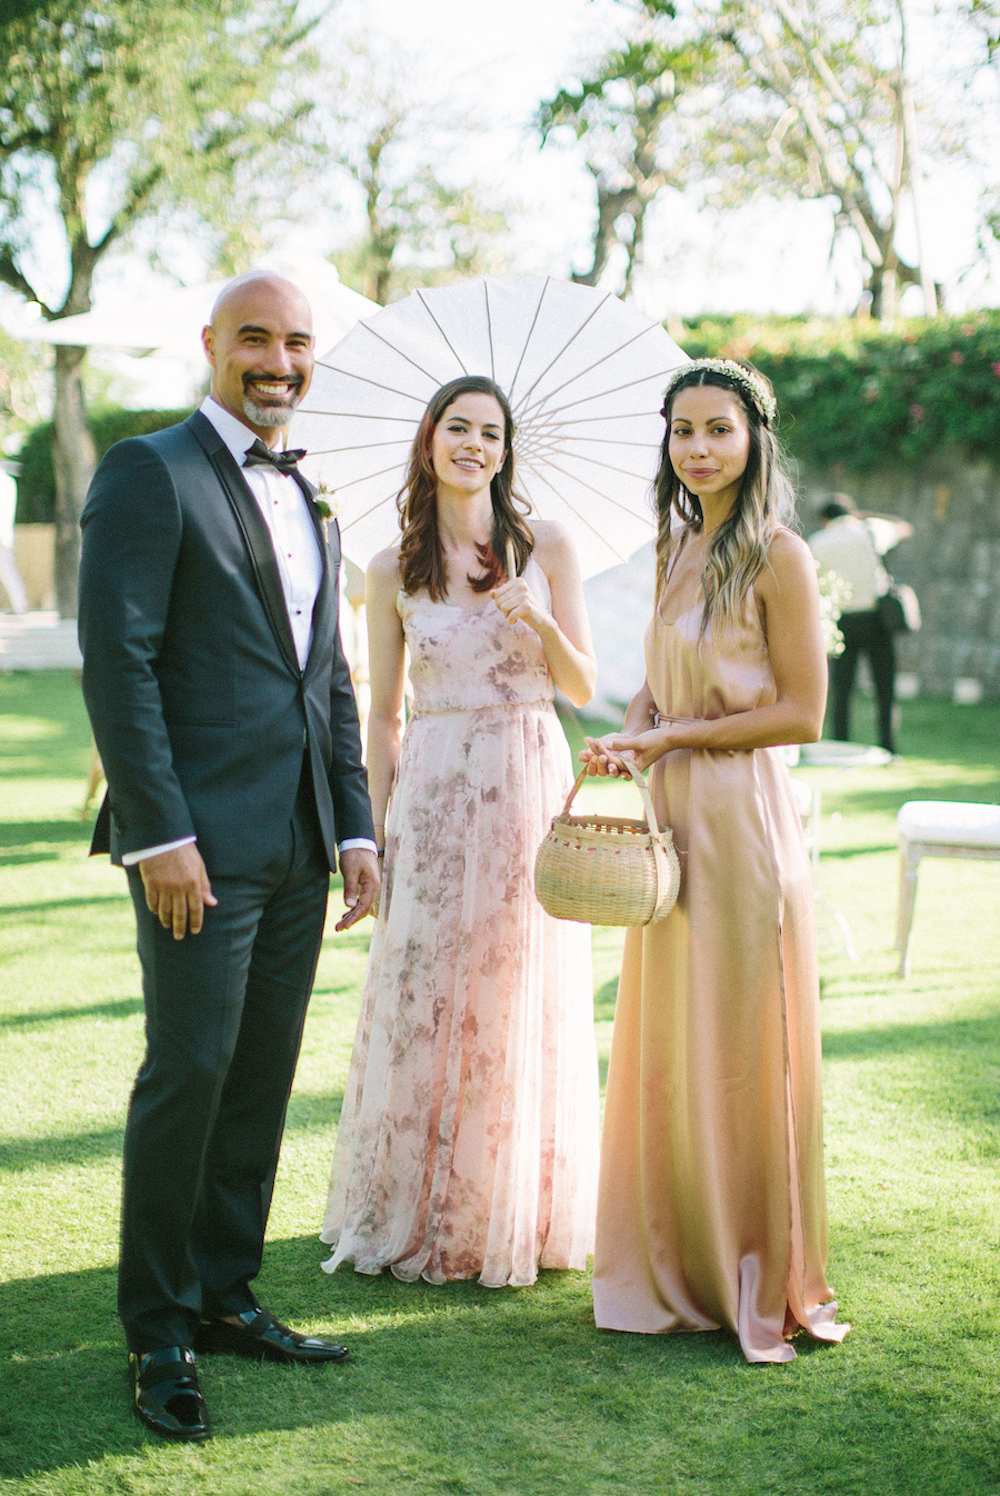 wedding guests outdoors with parasol and wicker basket